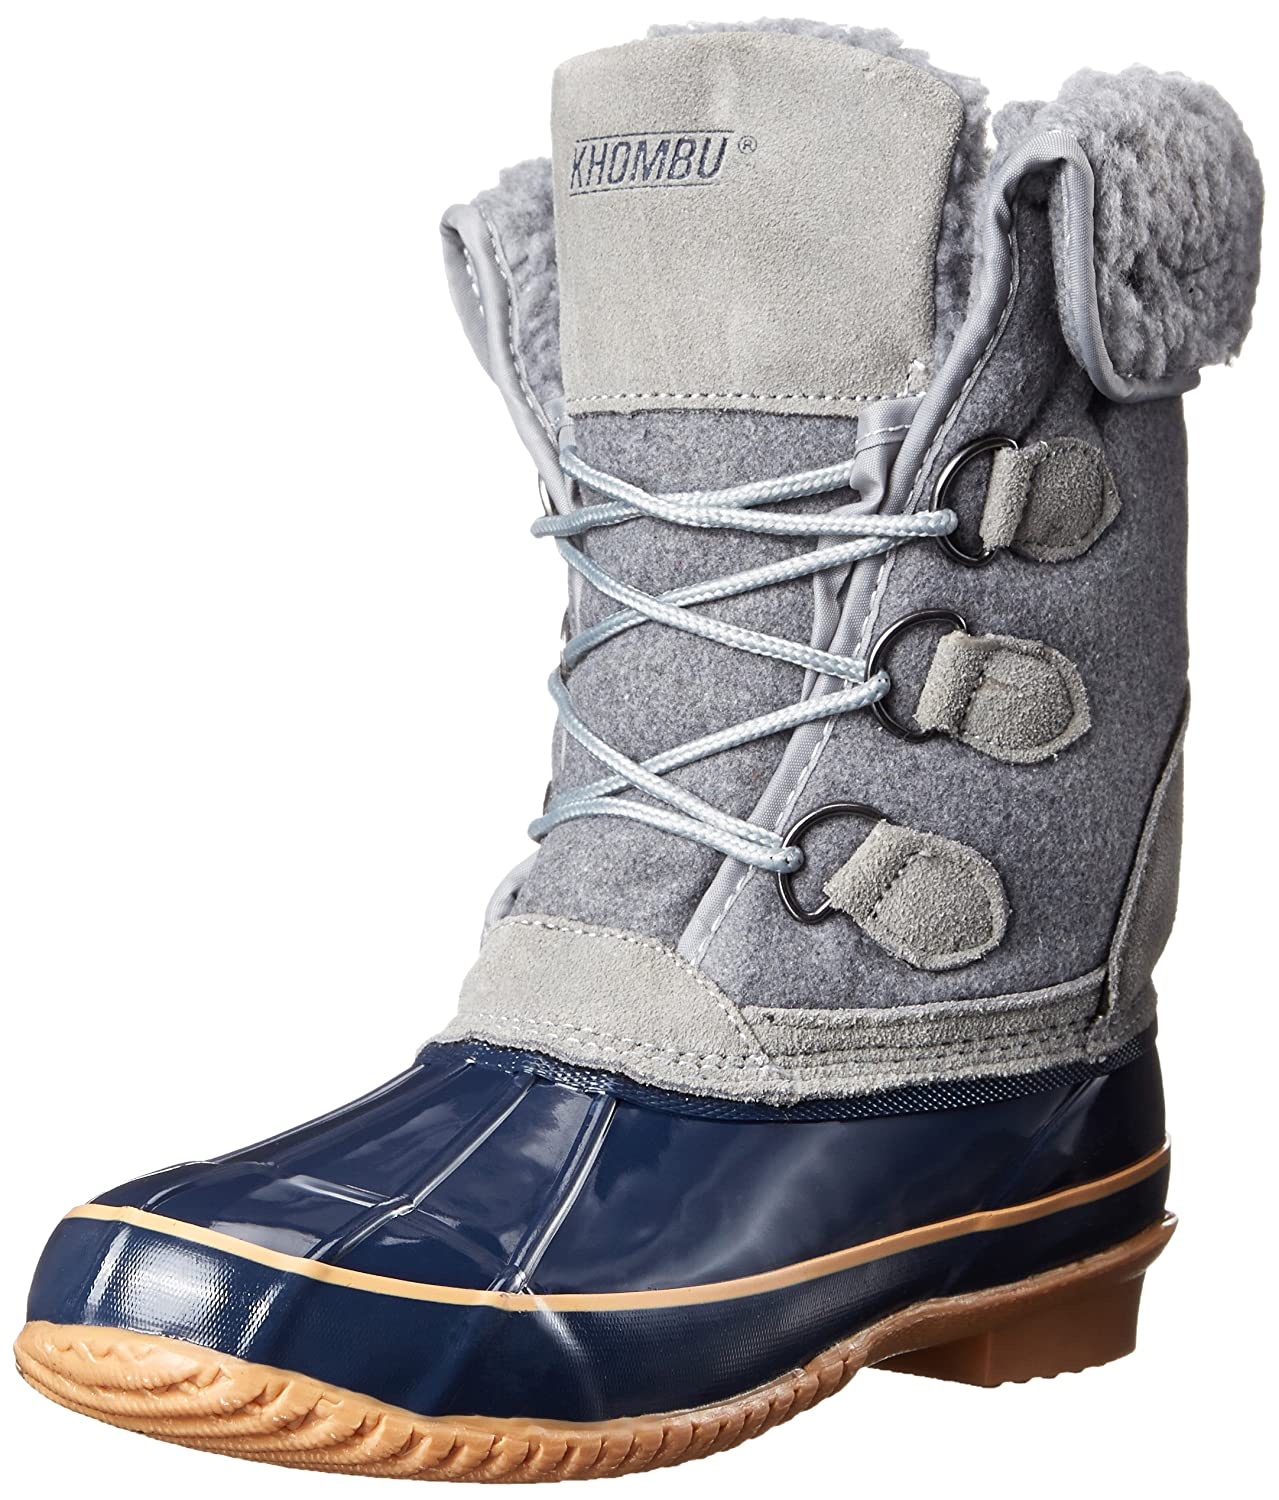 Khombu Women's Jilly Cold Weather Boot B00WITQAM8 11 B(M) US|Grey